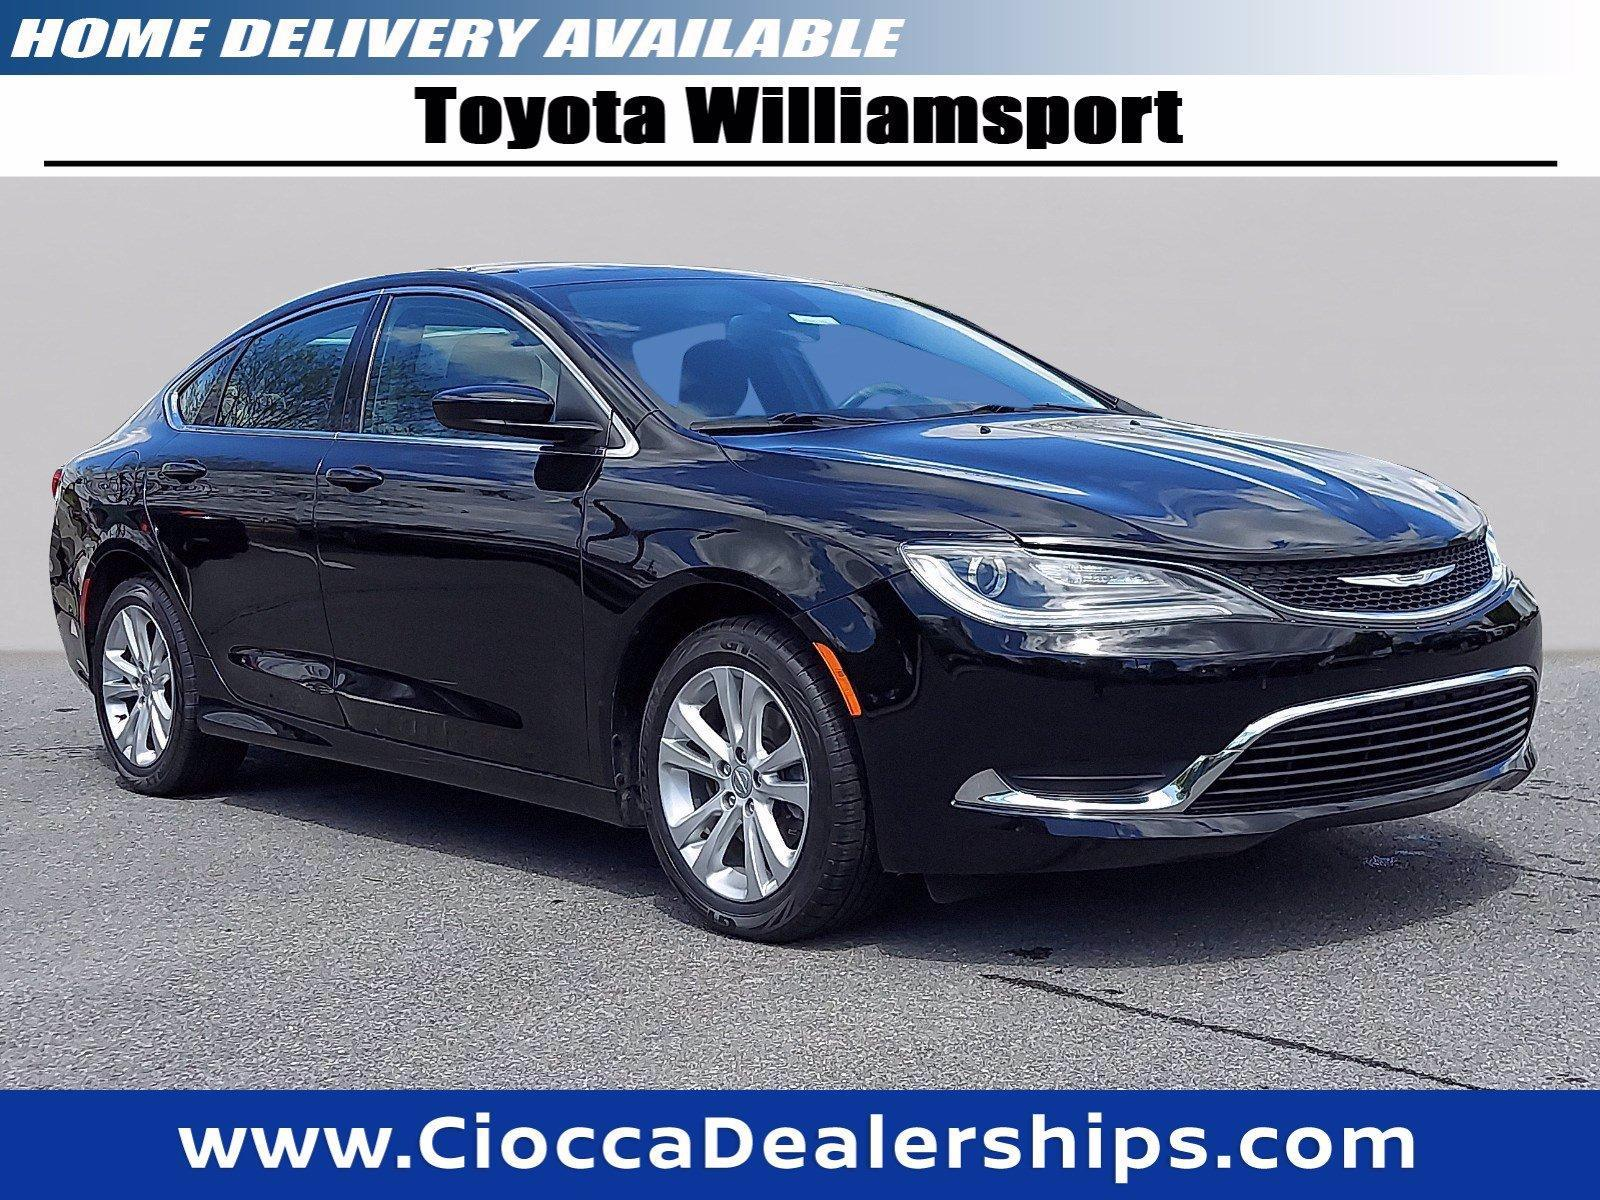 2015 Chrysler 200 Vehicle Photo in Muncy, PA 17756